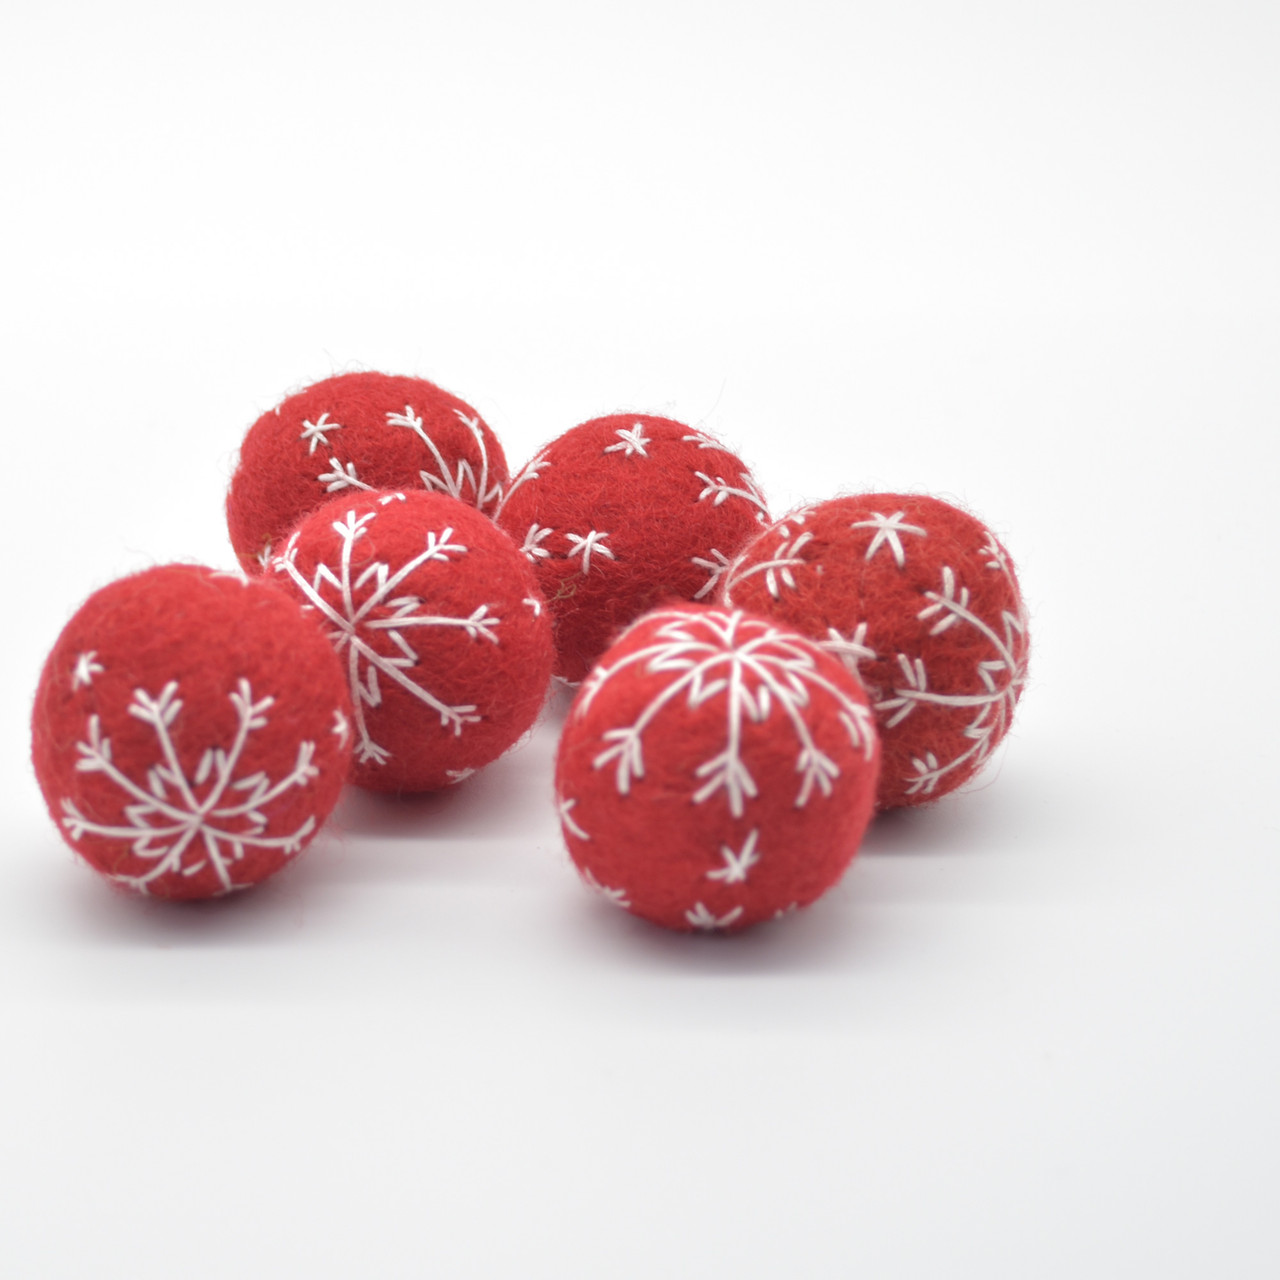 white and red with embroidered wool felt snowflakes 6 snowflake felt balls in grey Great for crafting for Christmas